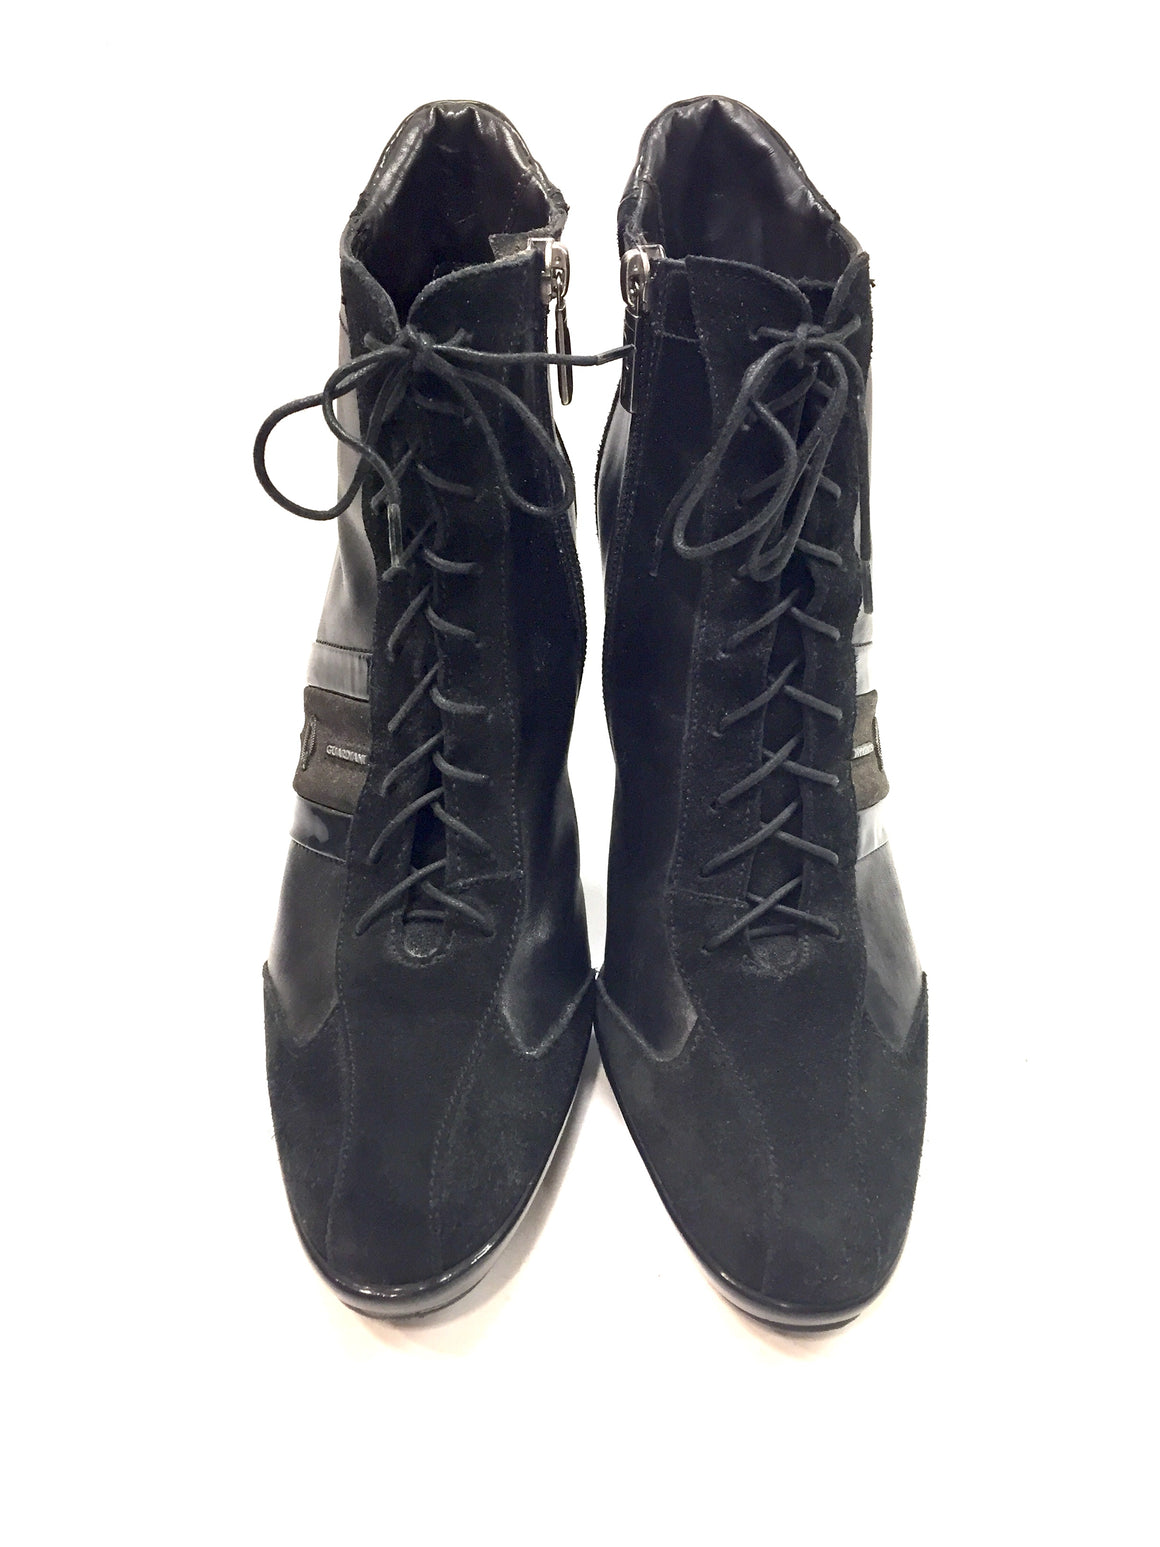 ALBERTO GUARDINI Black Leather & Suede Lace-Up Platform Ankle Boots Sz38